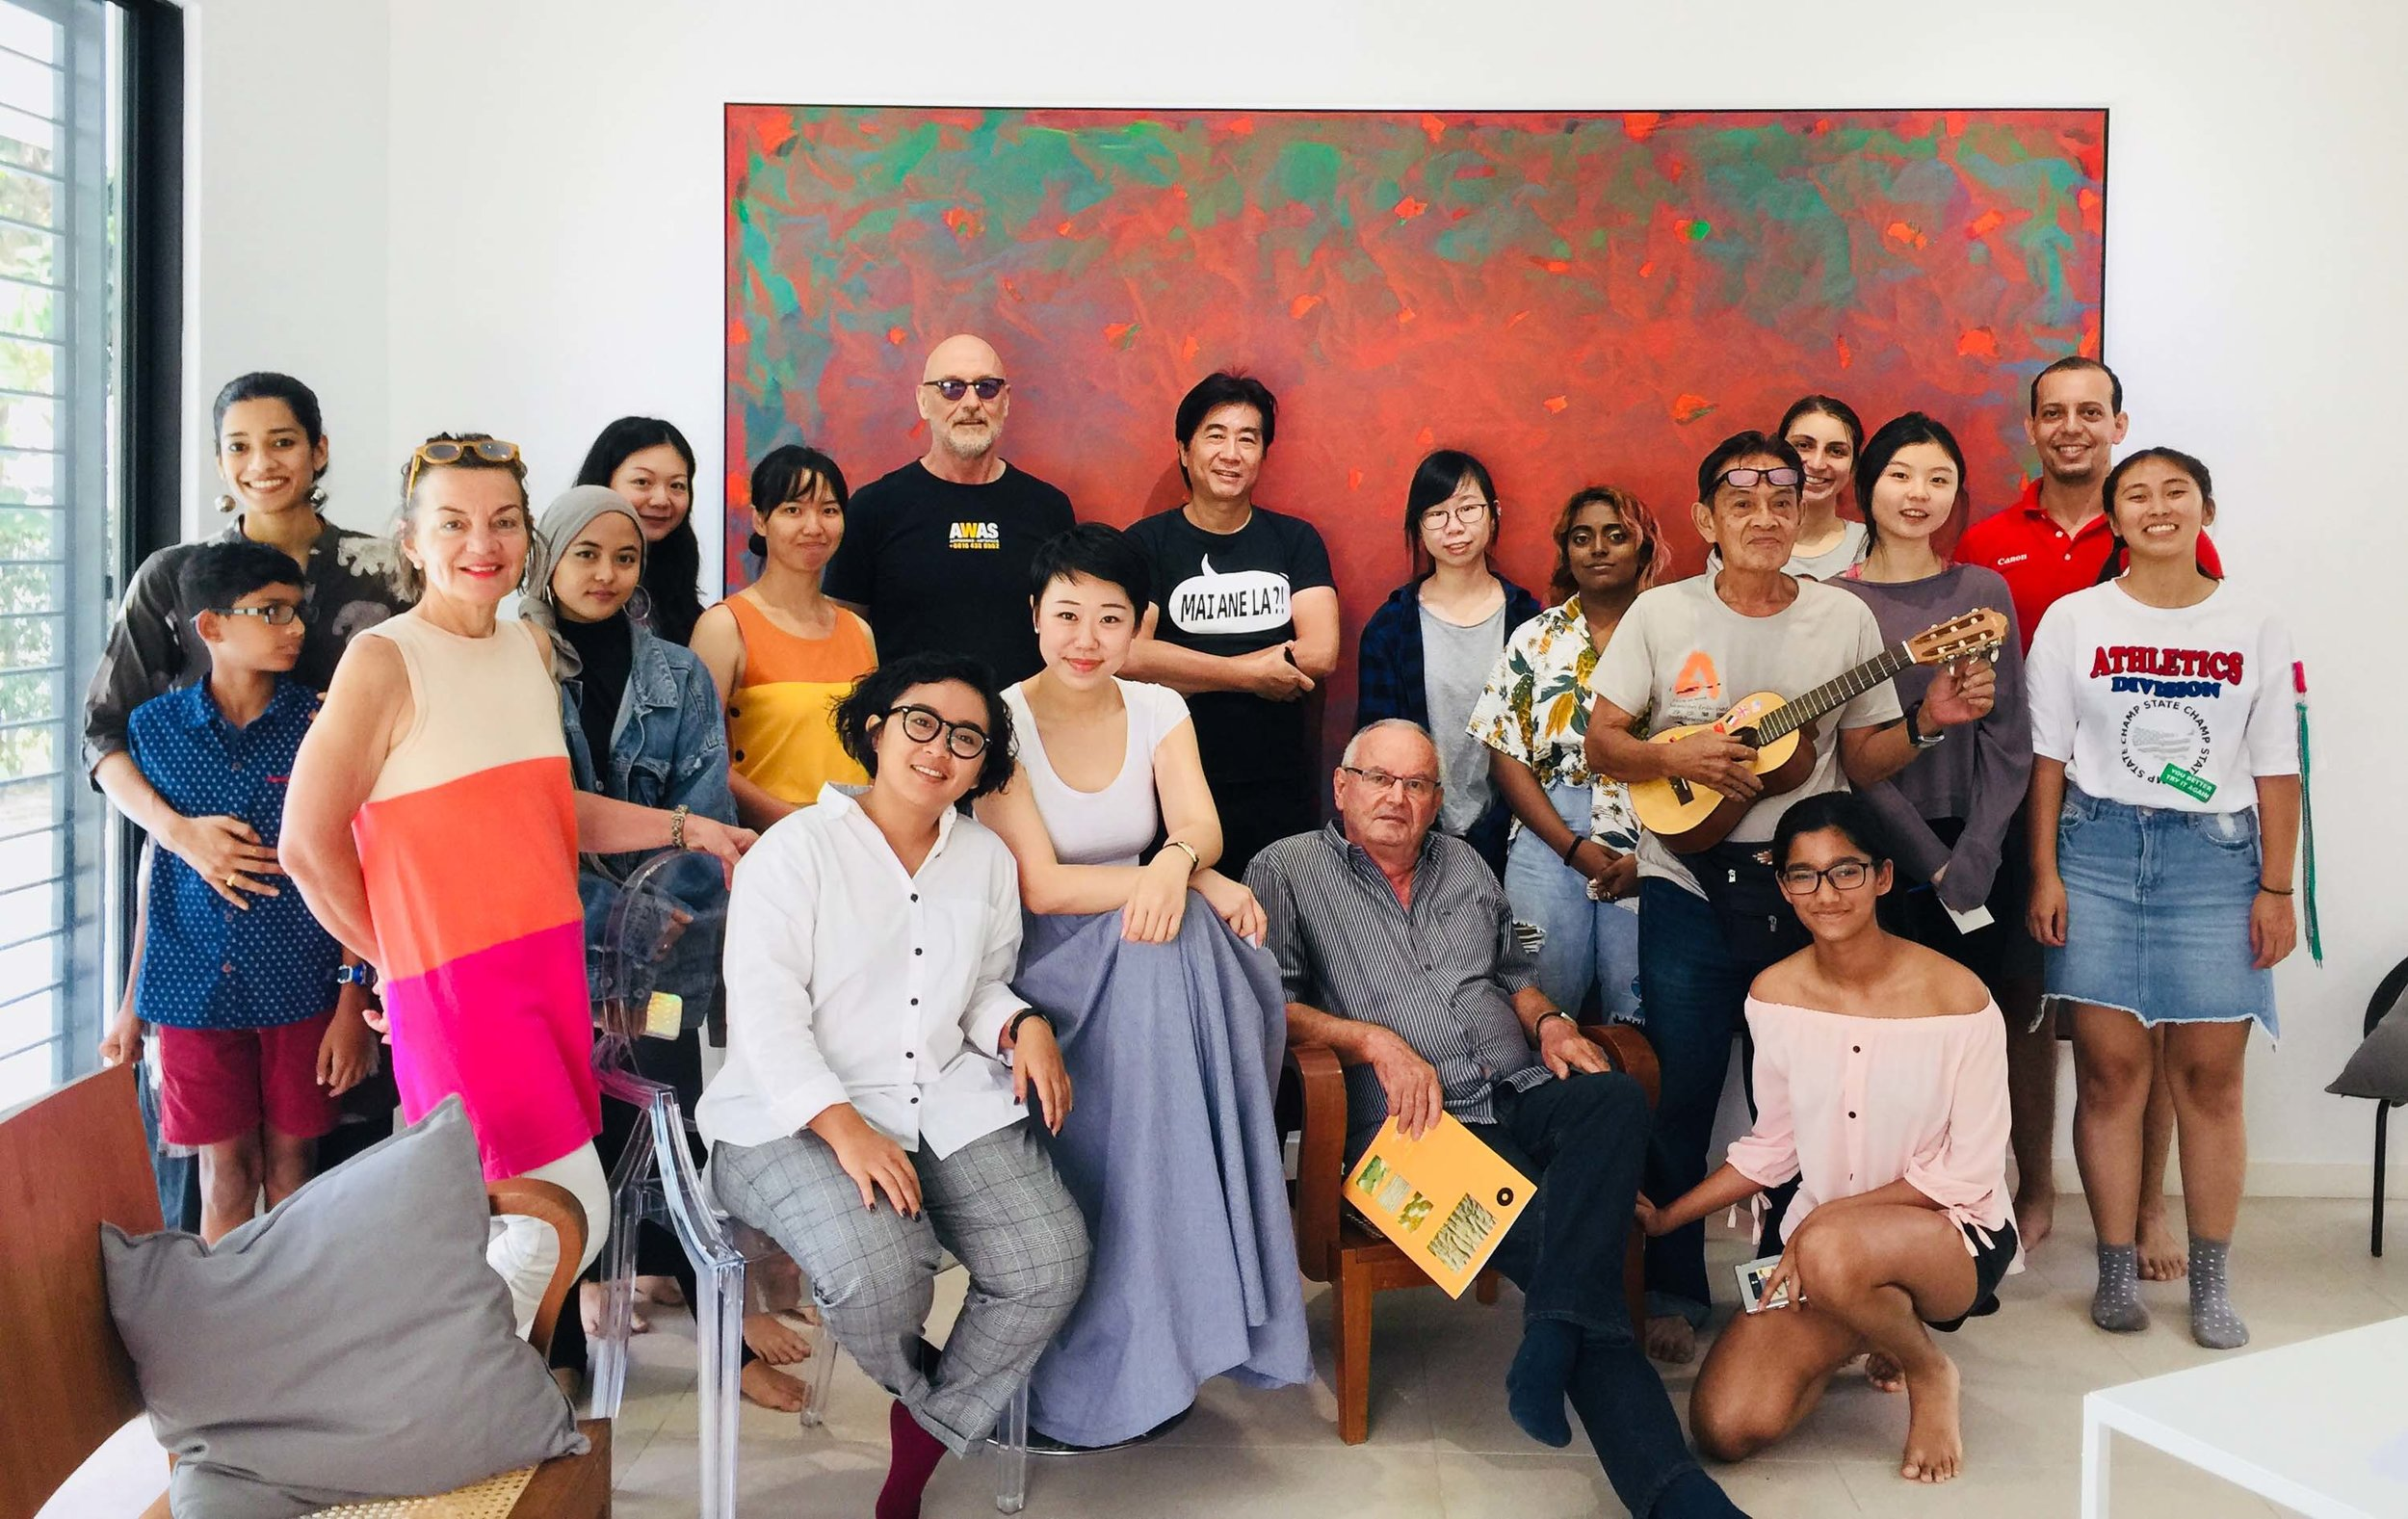 Art Chat at Suma Orientalis, attended by curator Ignatia Nilu, artists Long Thien Shih, Drew Harris and Sofia Haron, Dr Askandar Unglehrt, collectors and art students. Image courtesy of Suma Orientalis.